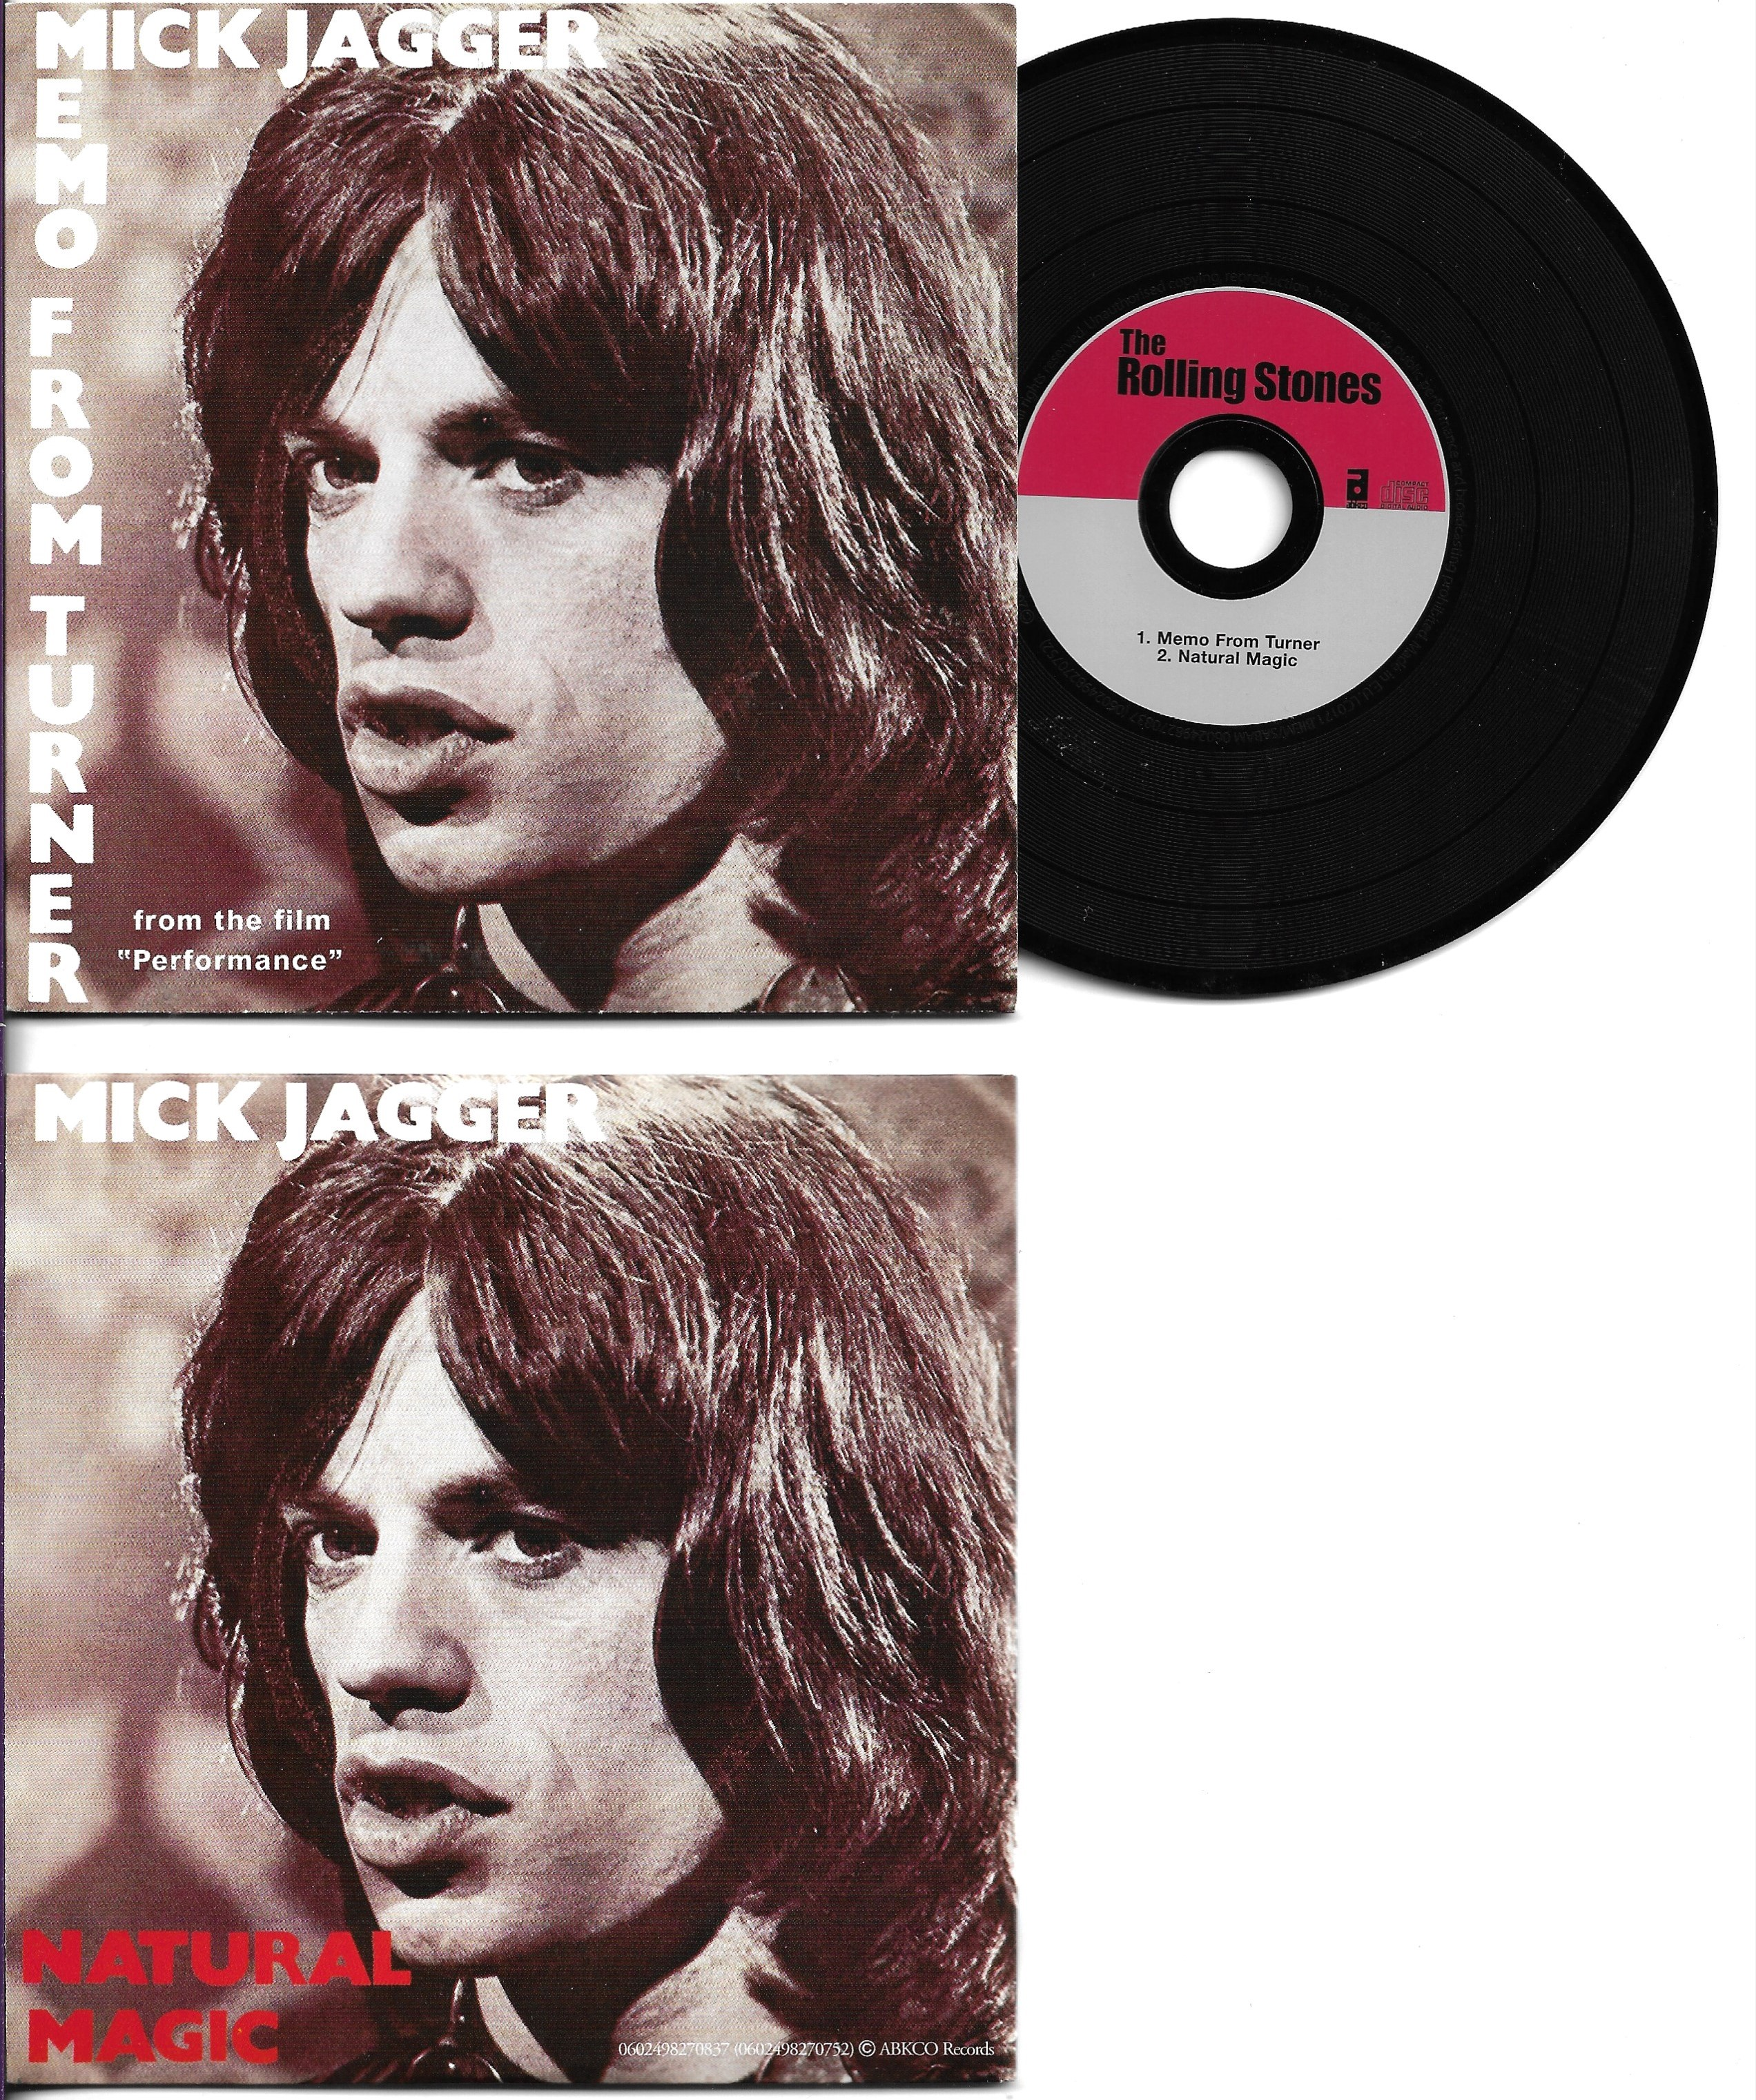 THE ROLLING STONES - MICK JAGGER - SOUNDTRACK : PE - Memo from turner 2-track CARD SLEEVE - CD single